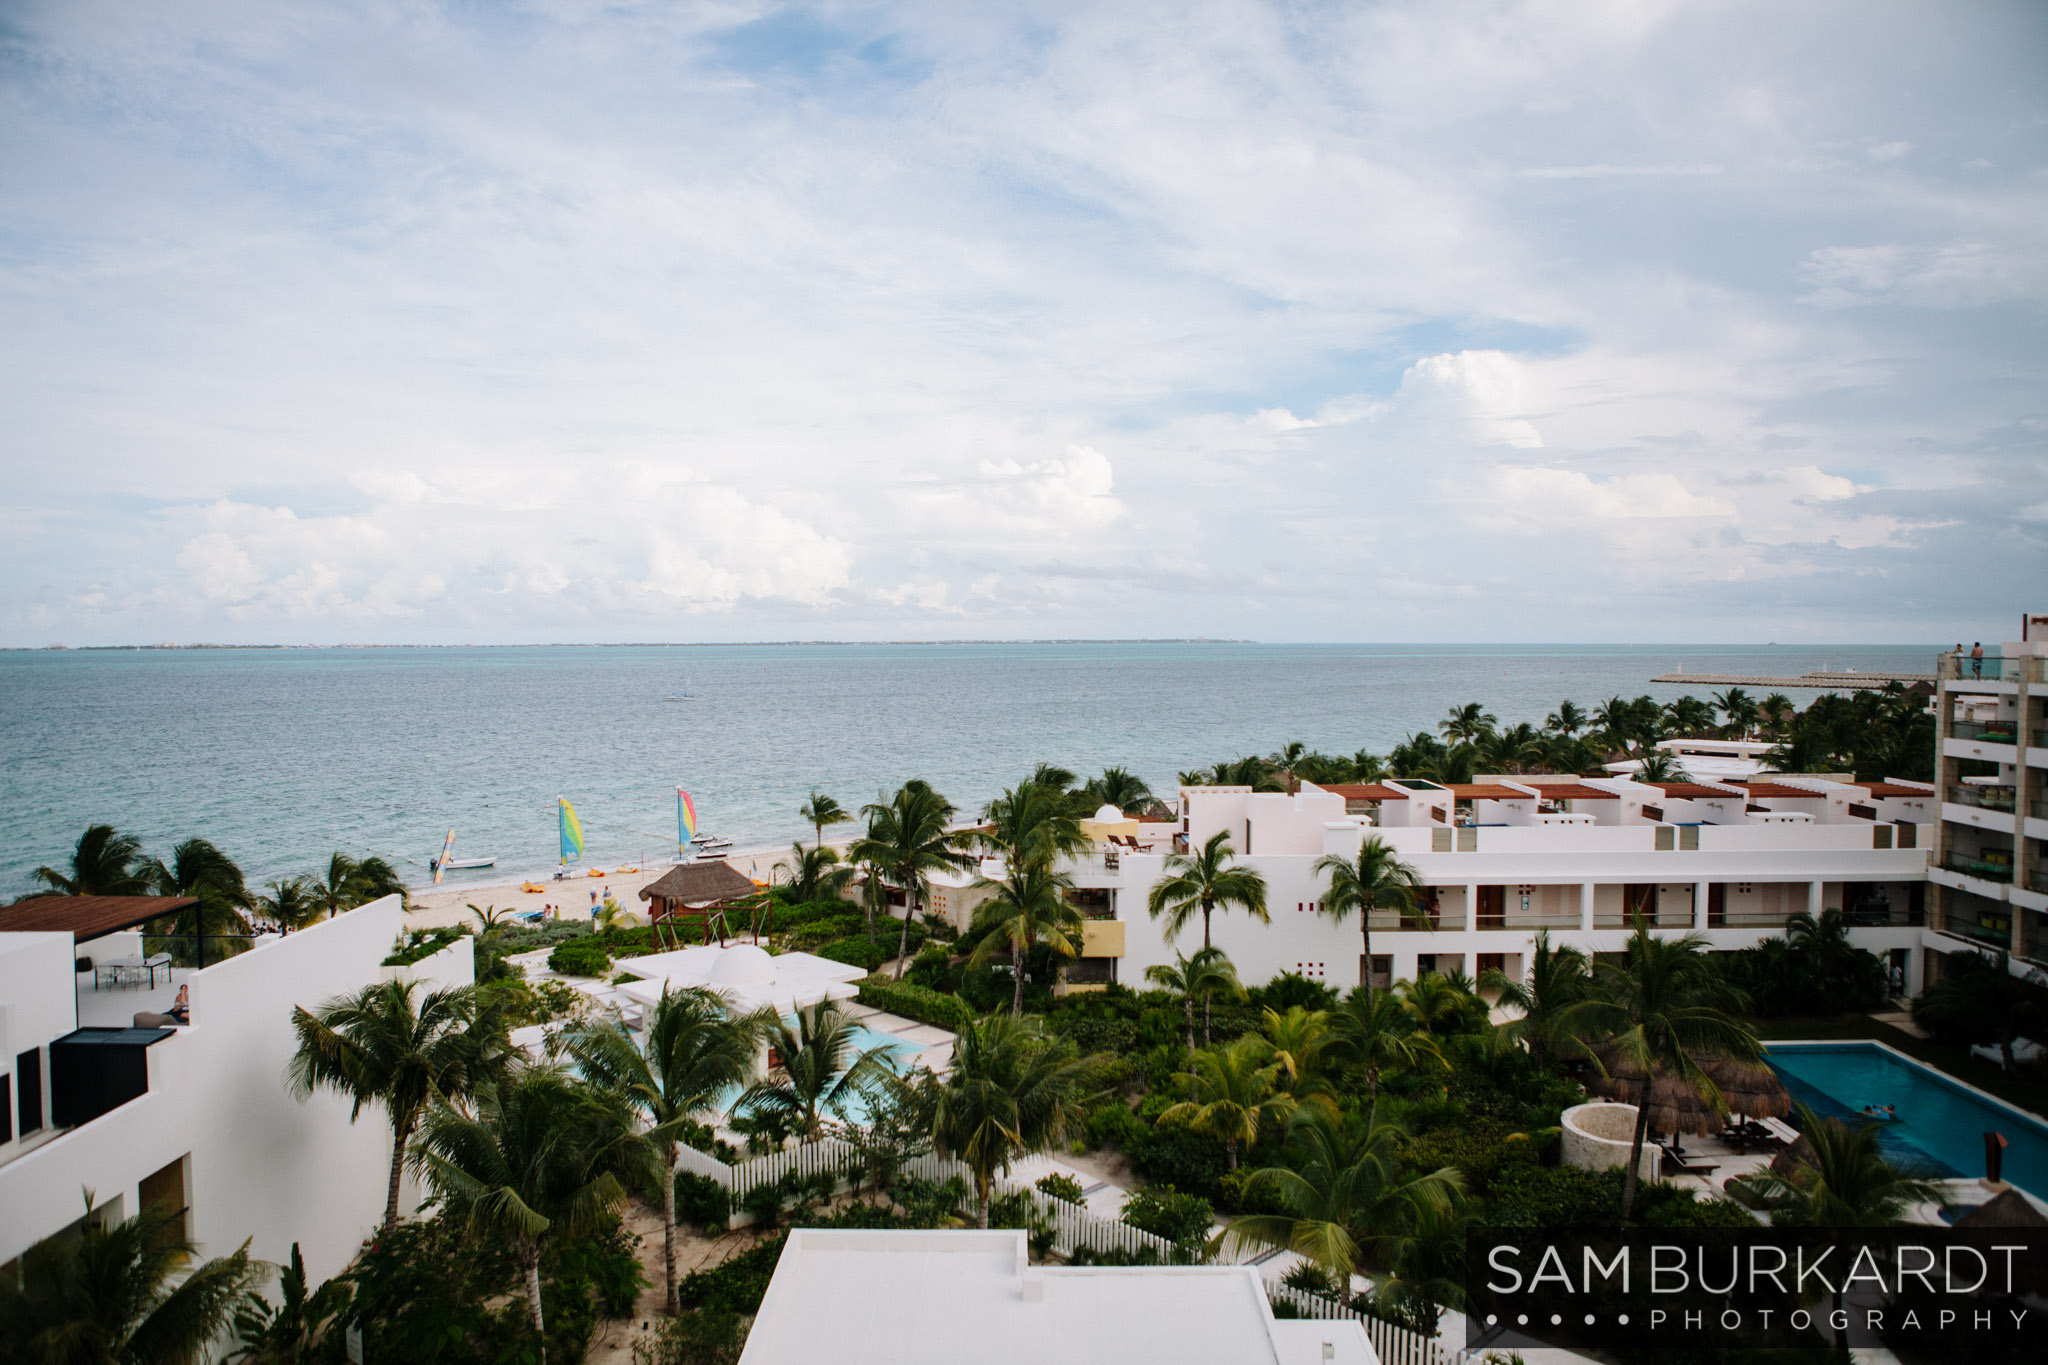 samburkardt-mexico-wedding-beach-0008.jpg